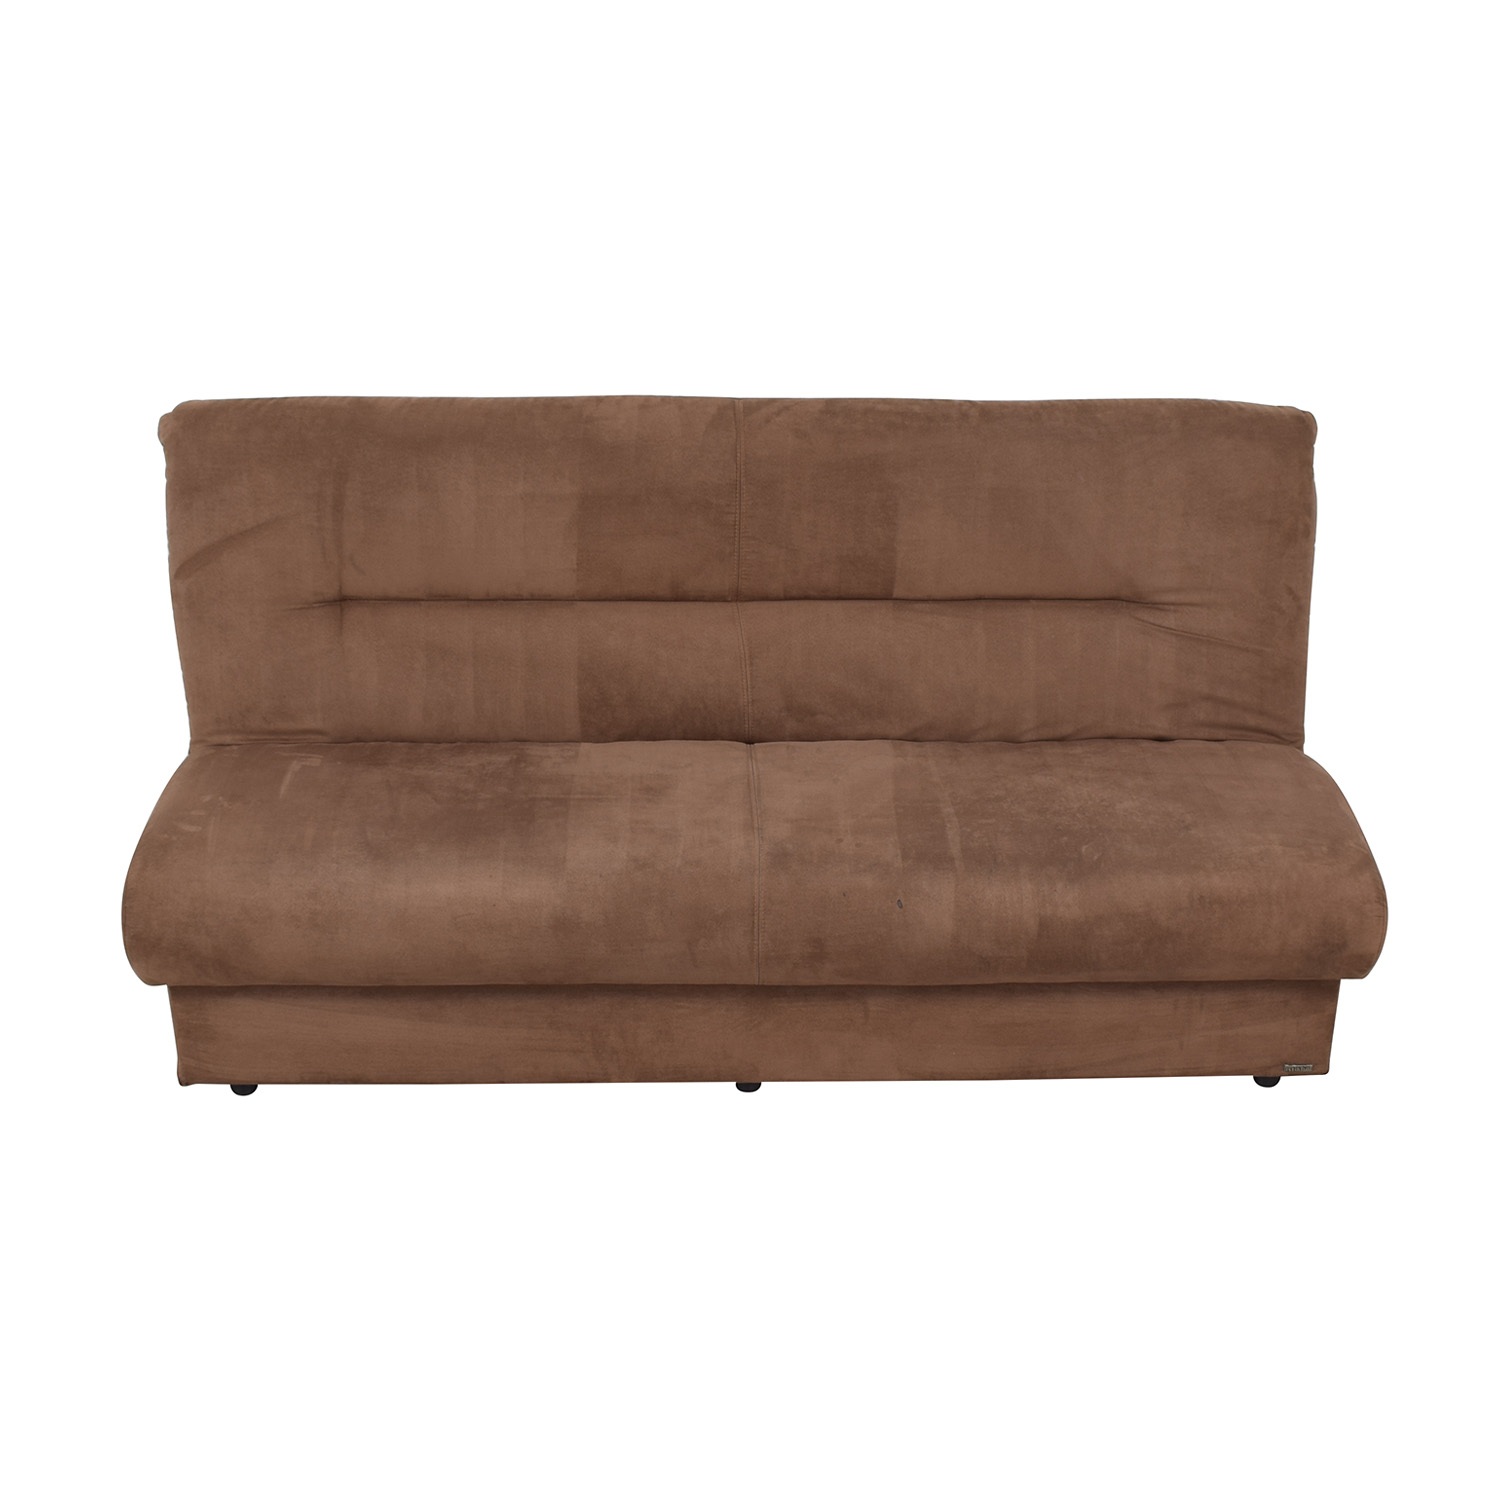 buy Istikbal Furniture Regata Diego Convertible Full Sofa Bed Istikbal Sofas